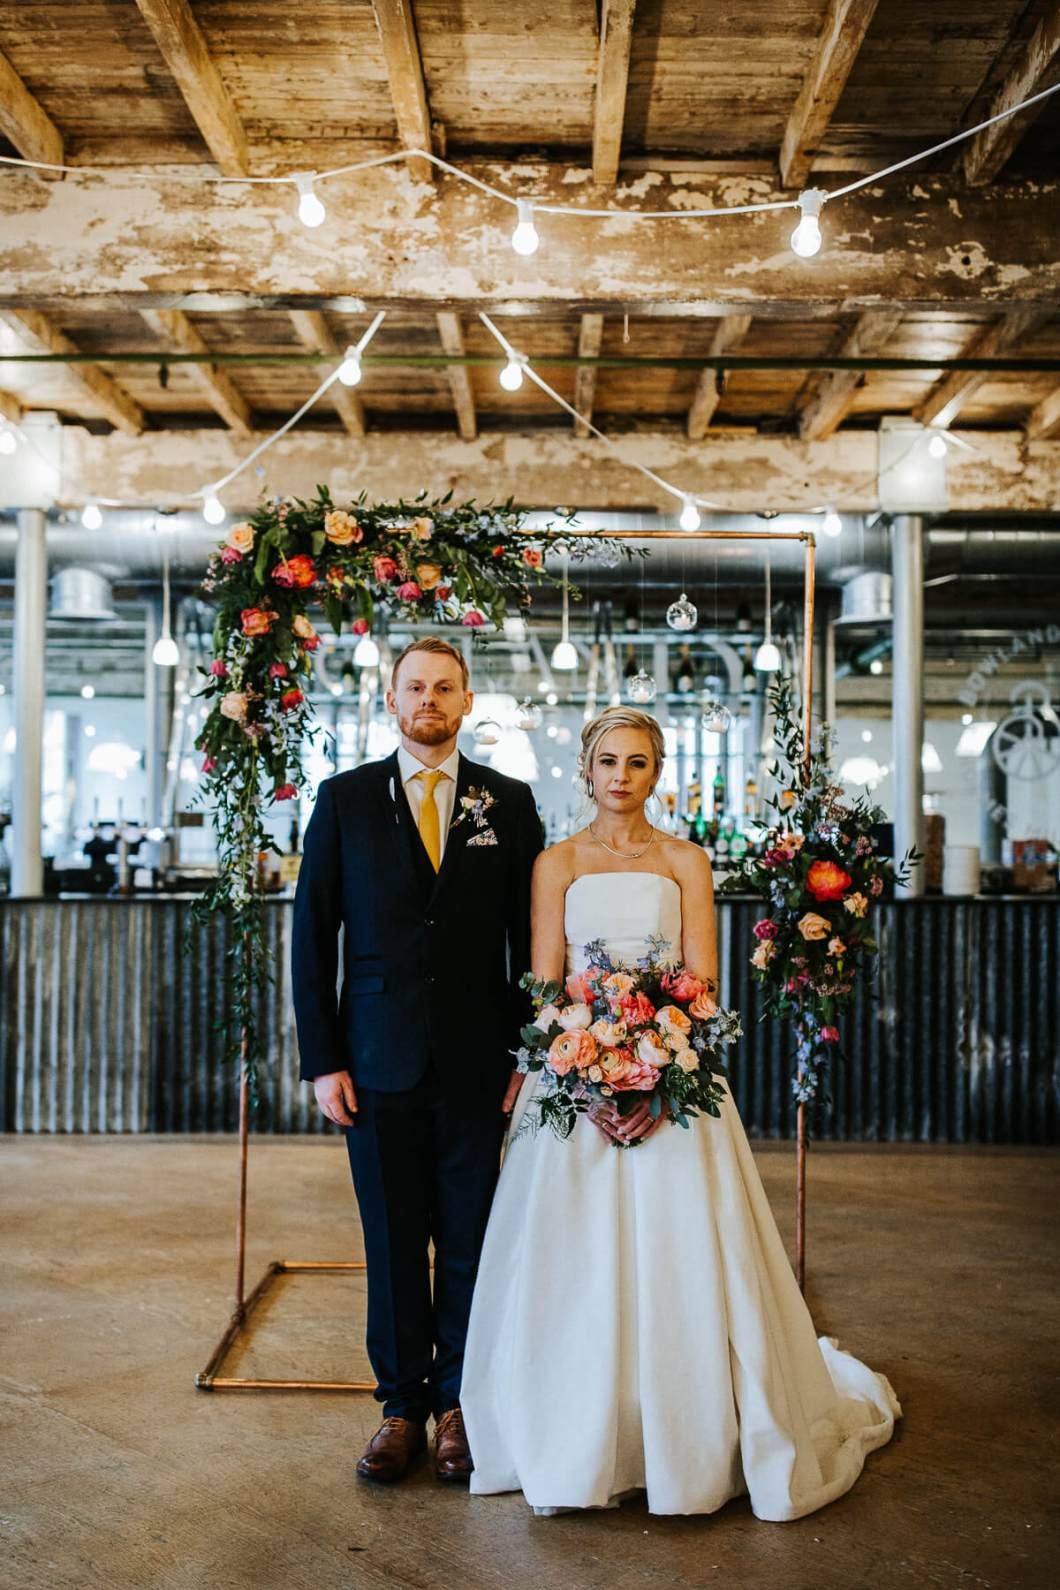 Holmes Mill wedding photographer